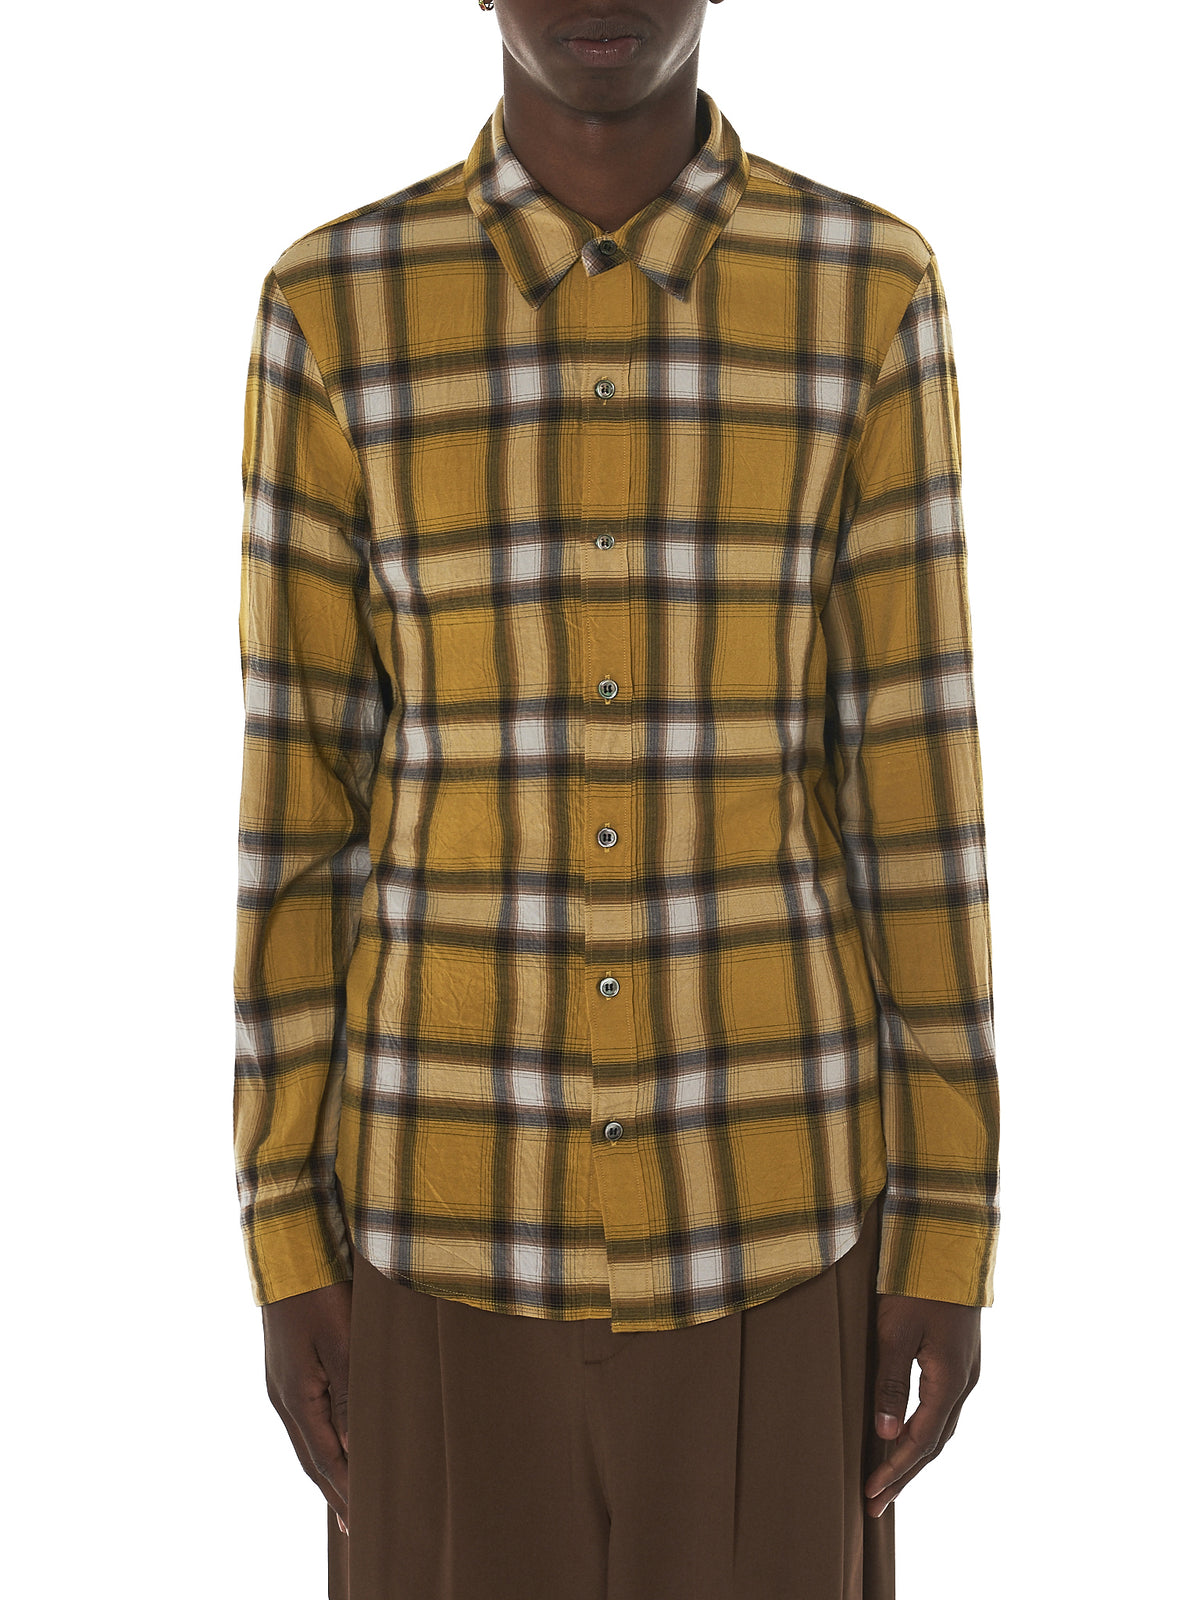 Attachment Kazuyuki Kumagai Plaid Shirt - Hlorenzo Front